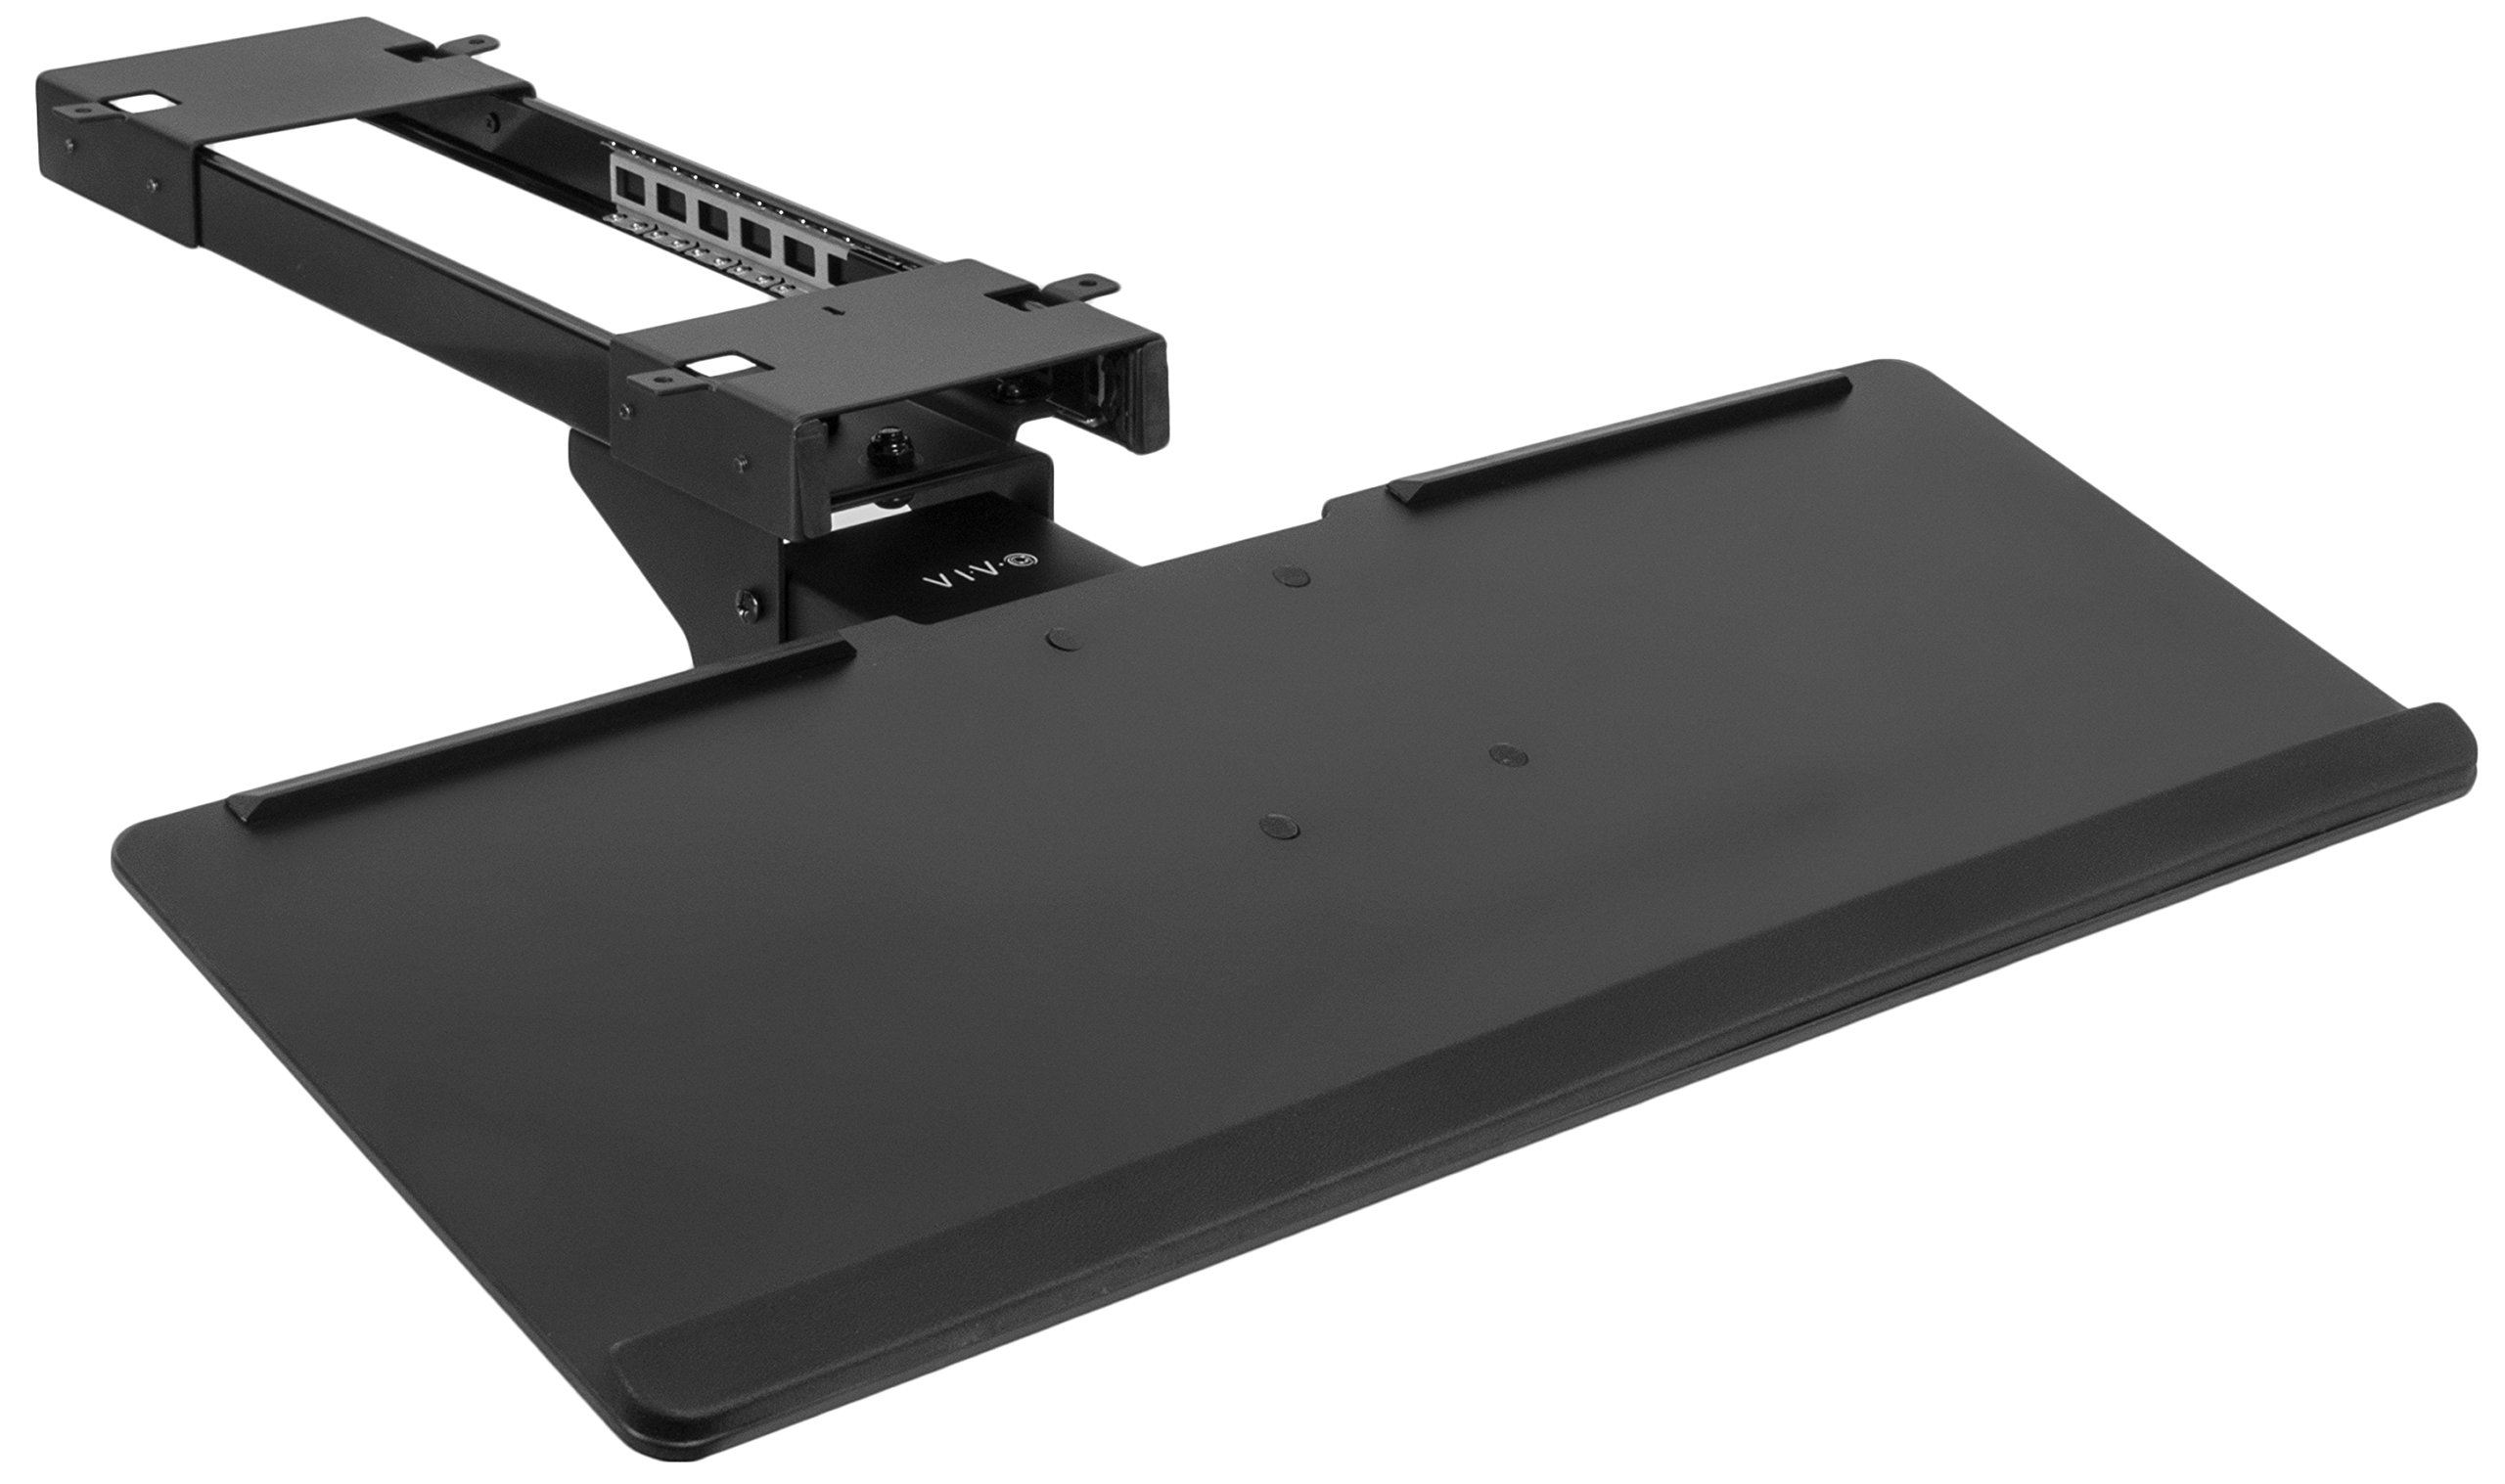 VIVO Black Adjustable Computer Keyboard & Mouse Platform Tray Deluxe Smooth Rolling Track Under Table Desk Mount (MOUNT-KB04C)